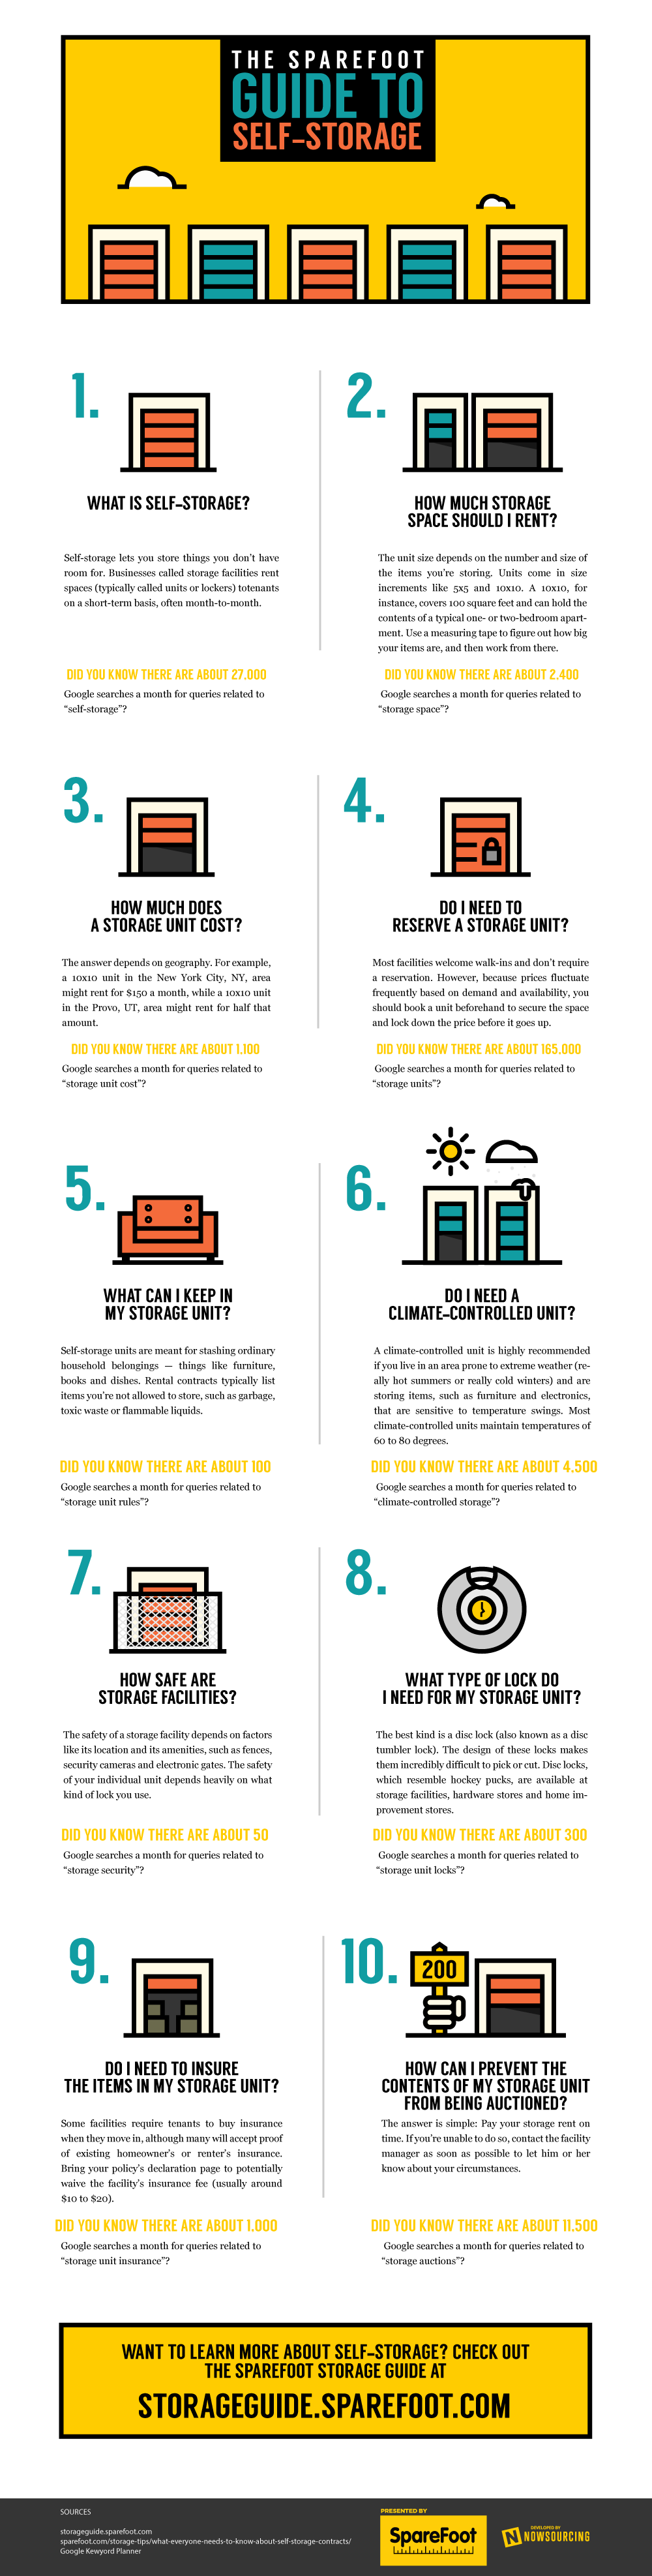 Moving Season: Self-Storage FAQs from SpareFoot